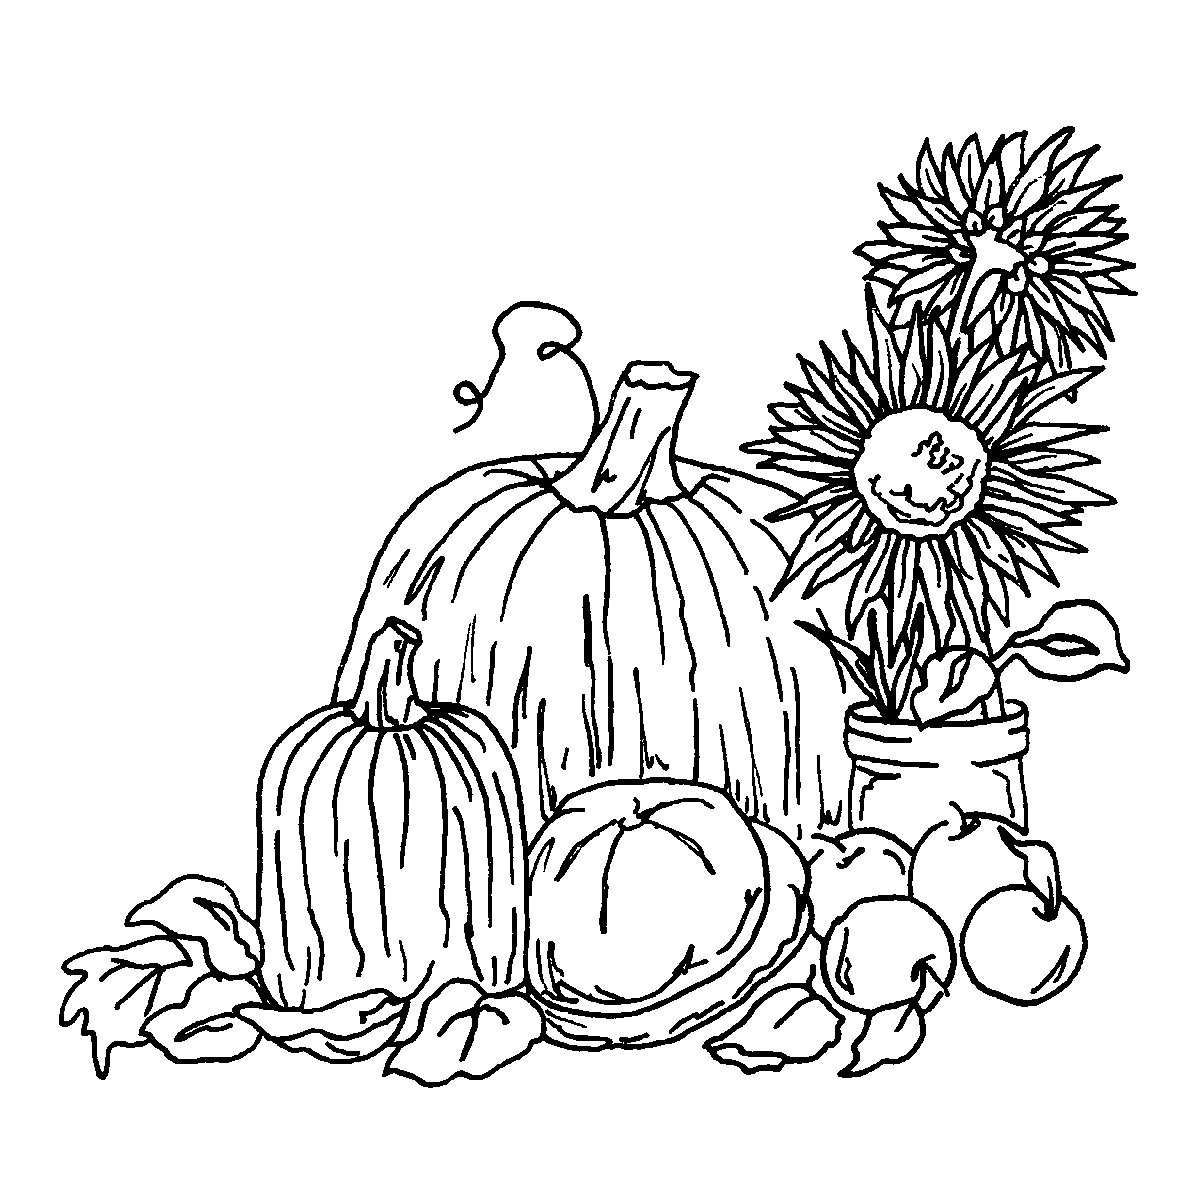 Harvest Festival Coloring Sheets Coloring Coloring Pages